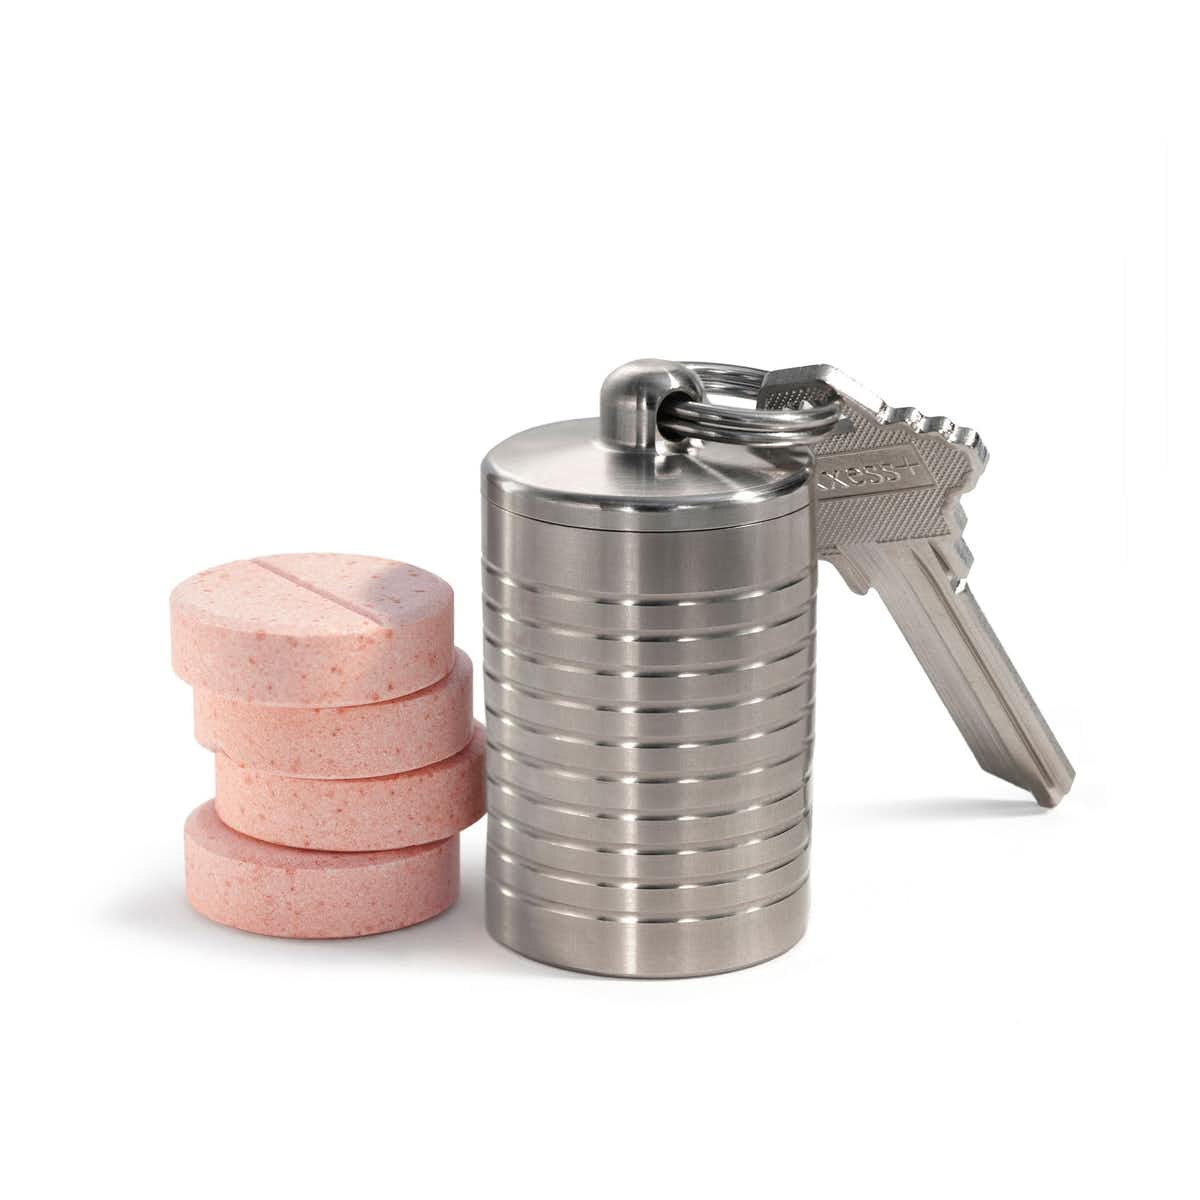 Extra Wide Single Chamber Pill Holder - Stainless Steel